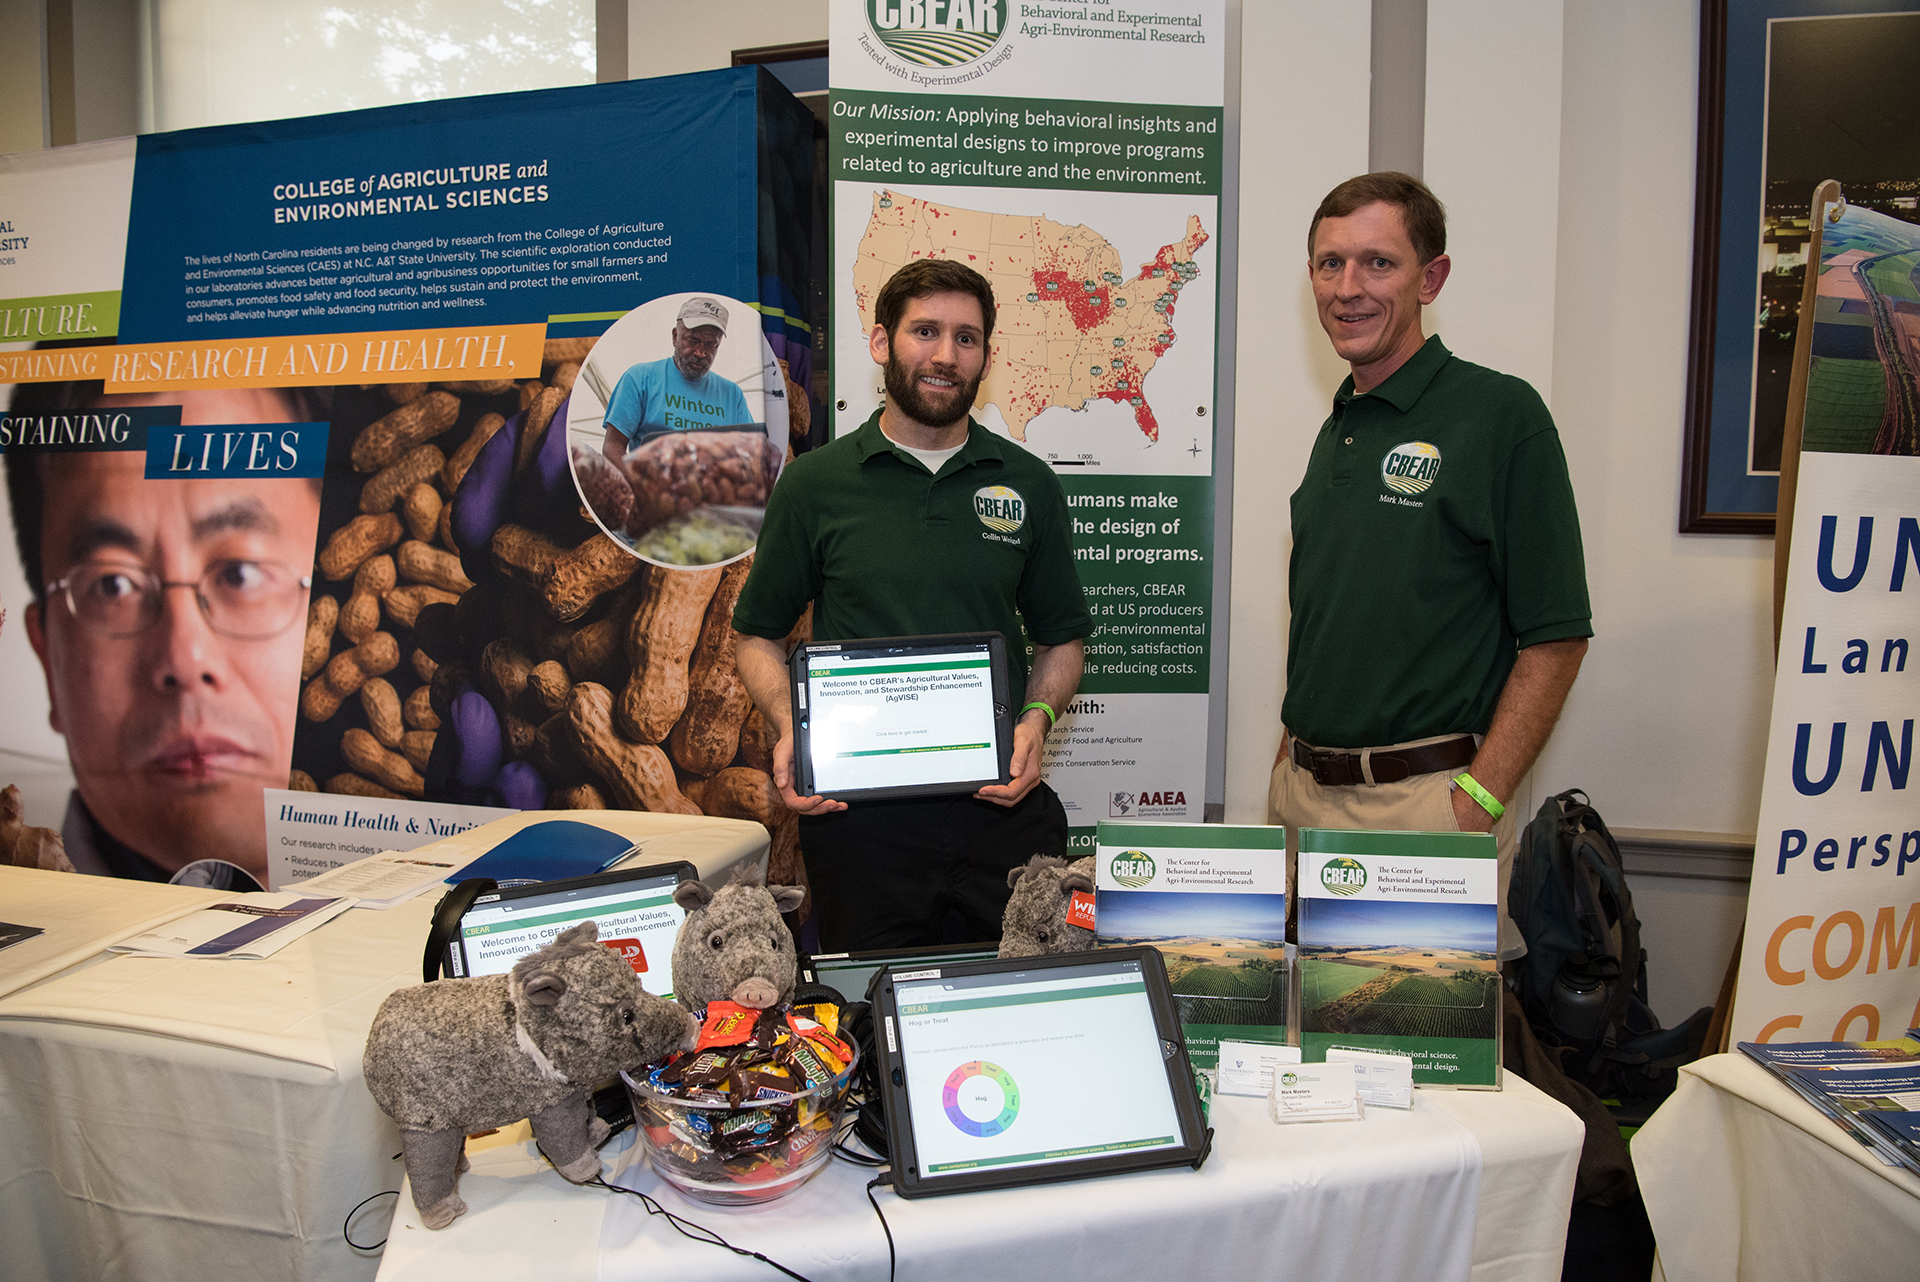 CBEAR at the 2018 Annual Agricultural Research Exhibition & Reception